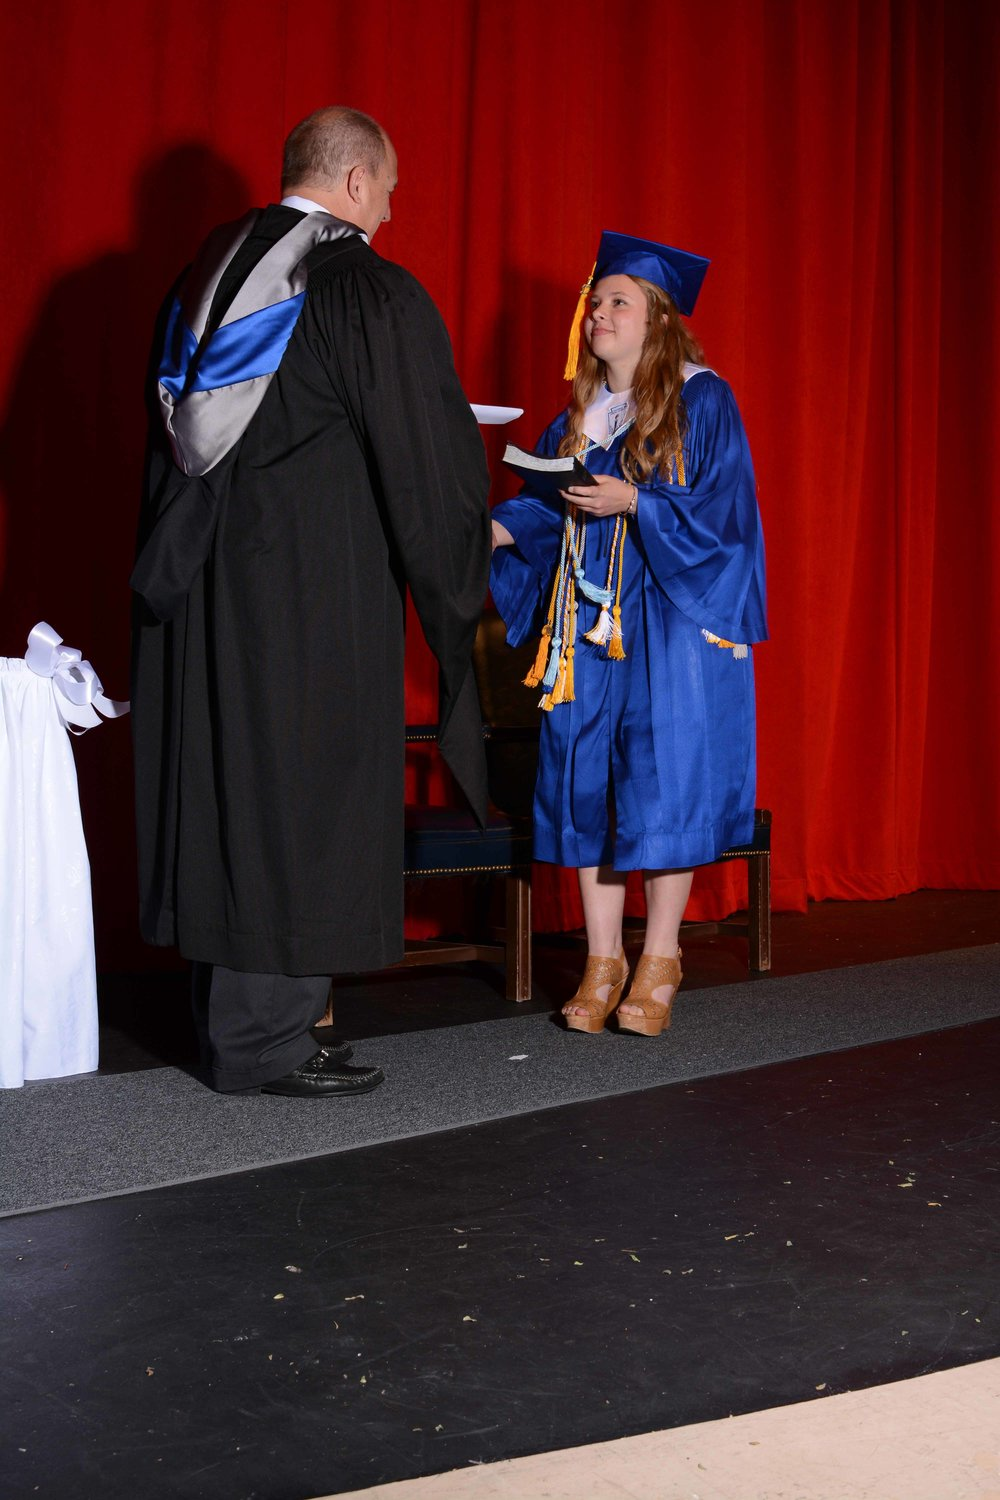 May15 HardingGraduation06.jpg